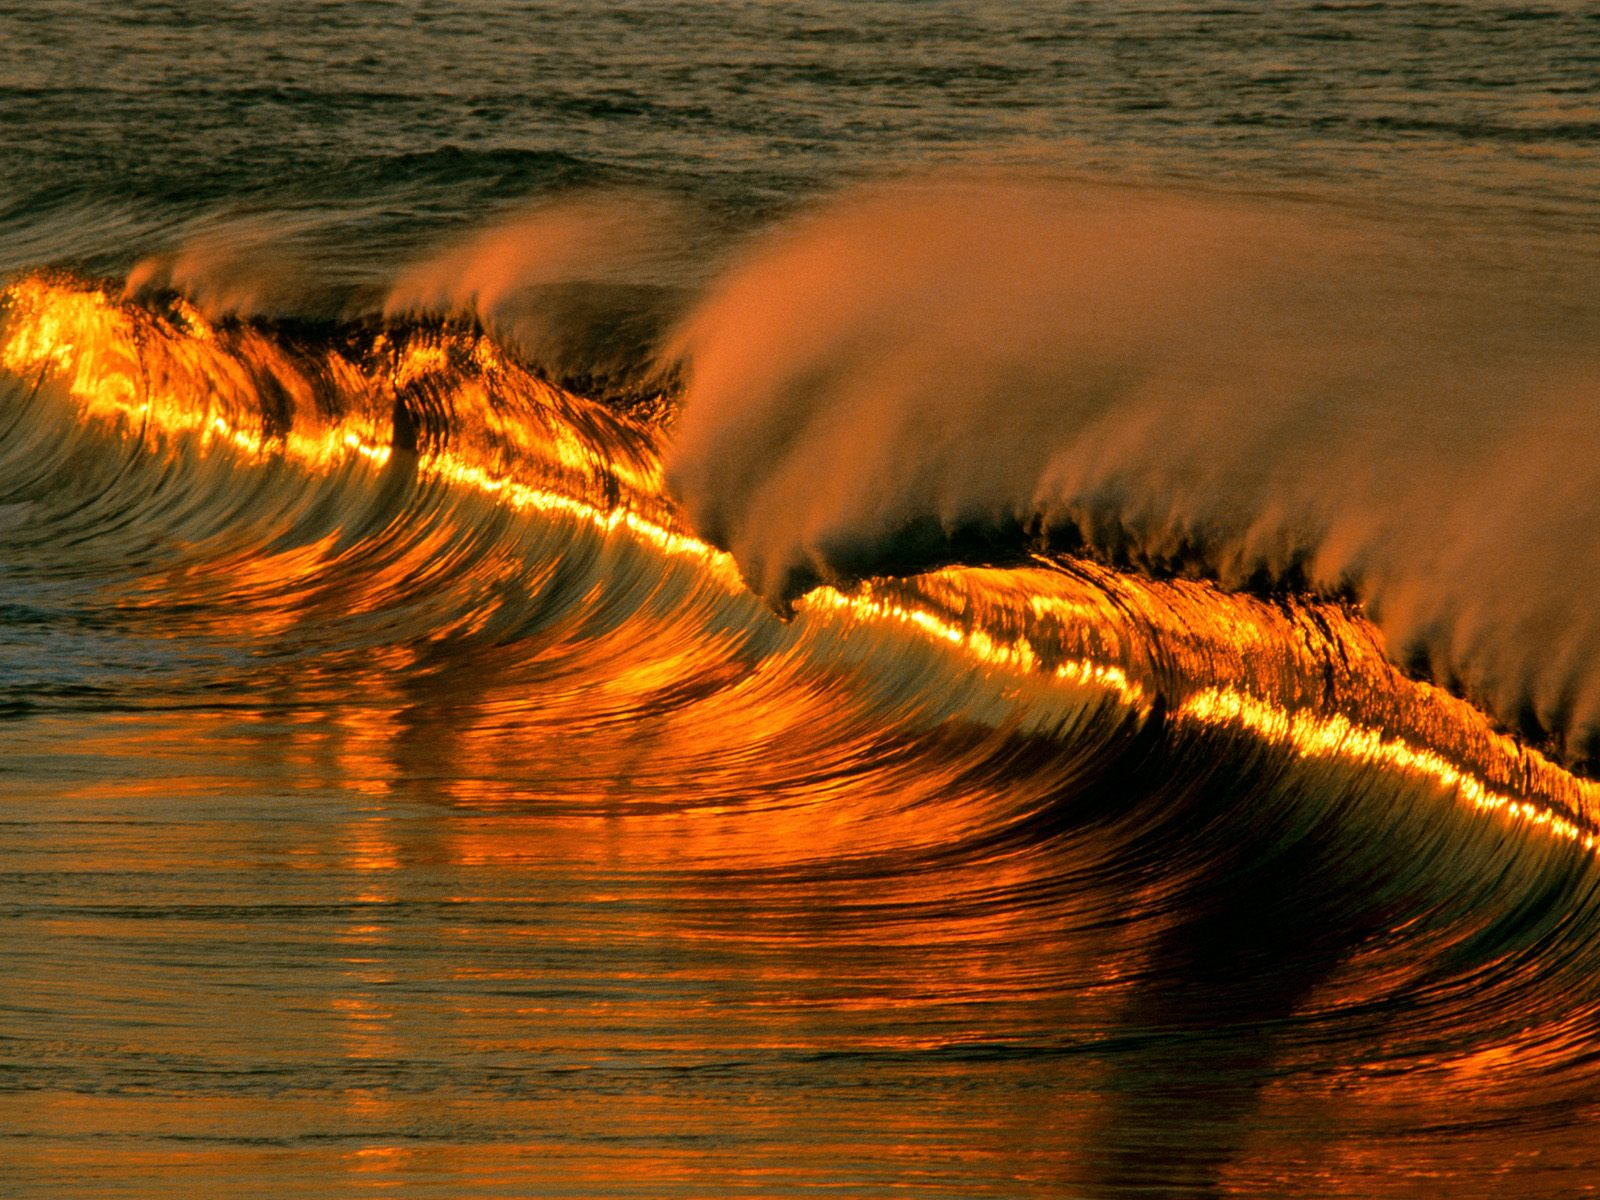 http://2.bp.blogspot.com/-xyX5T6L4X9I/TenZBTJhNiI/AAAAAAAAAvk/JhWa1y3p1hg/s1600/nature-wallpaper-golden-wave-at-sunset-puerto-escondido-mexico.jpg